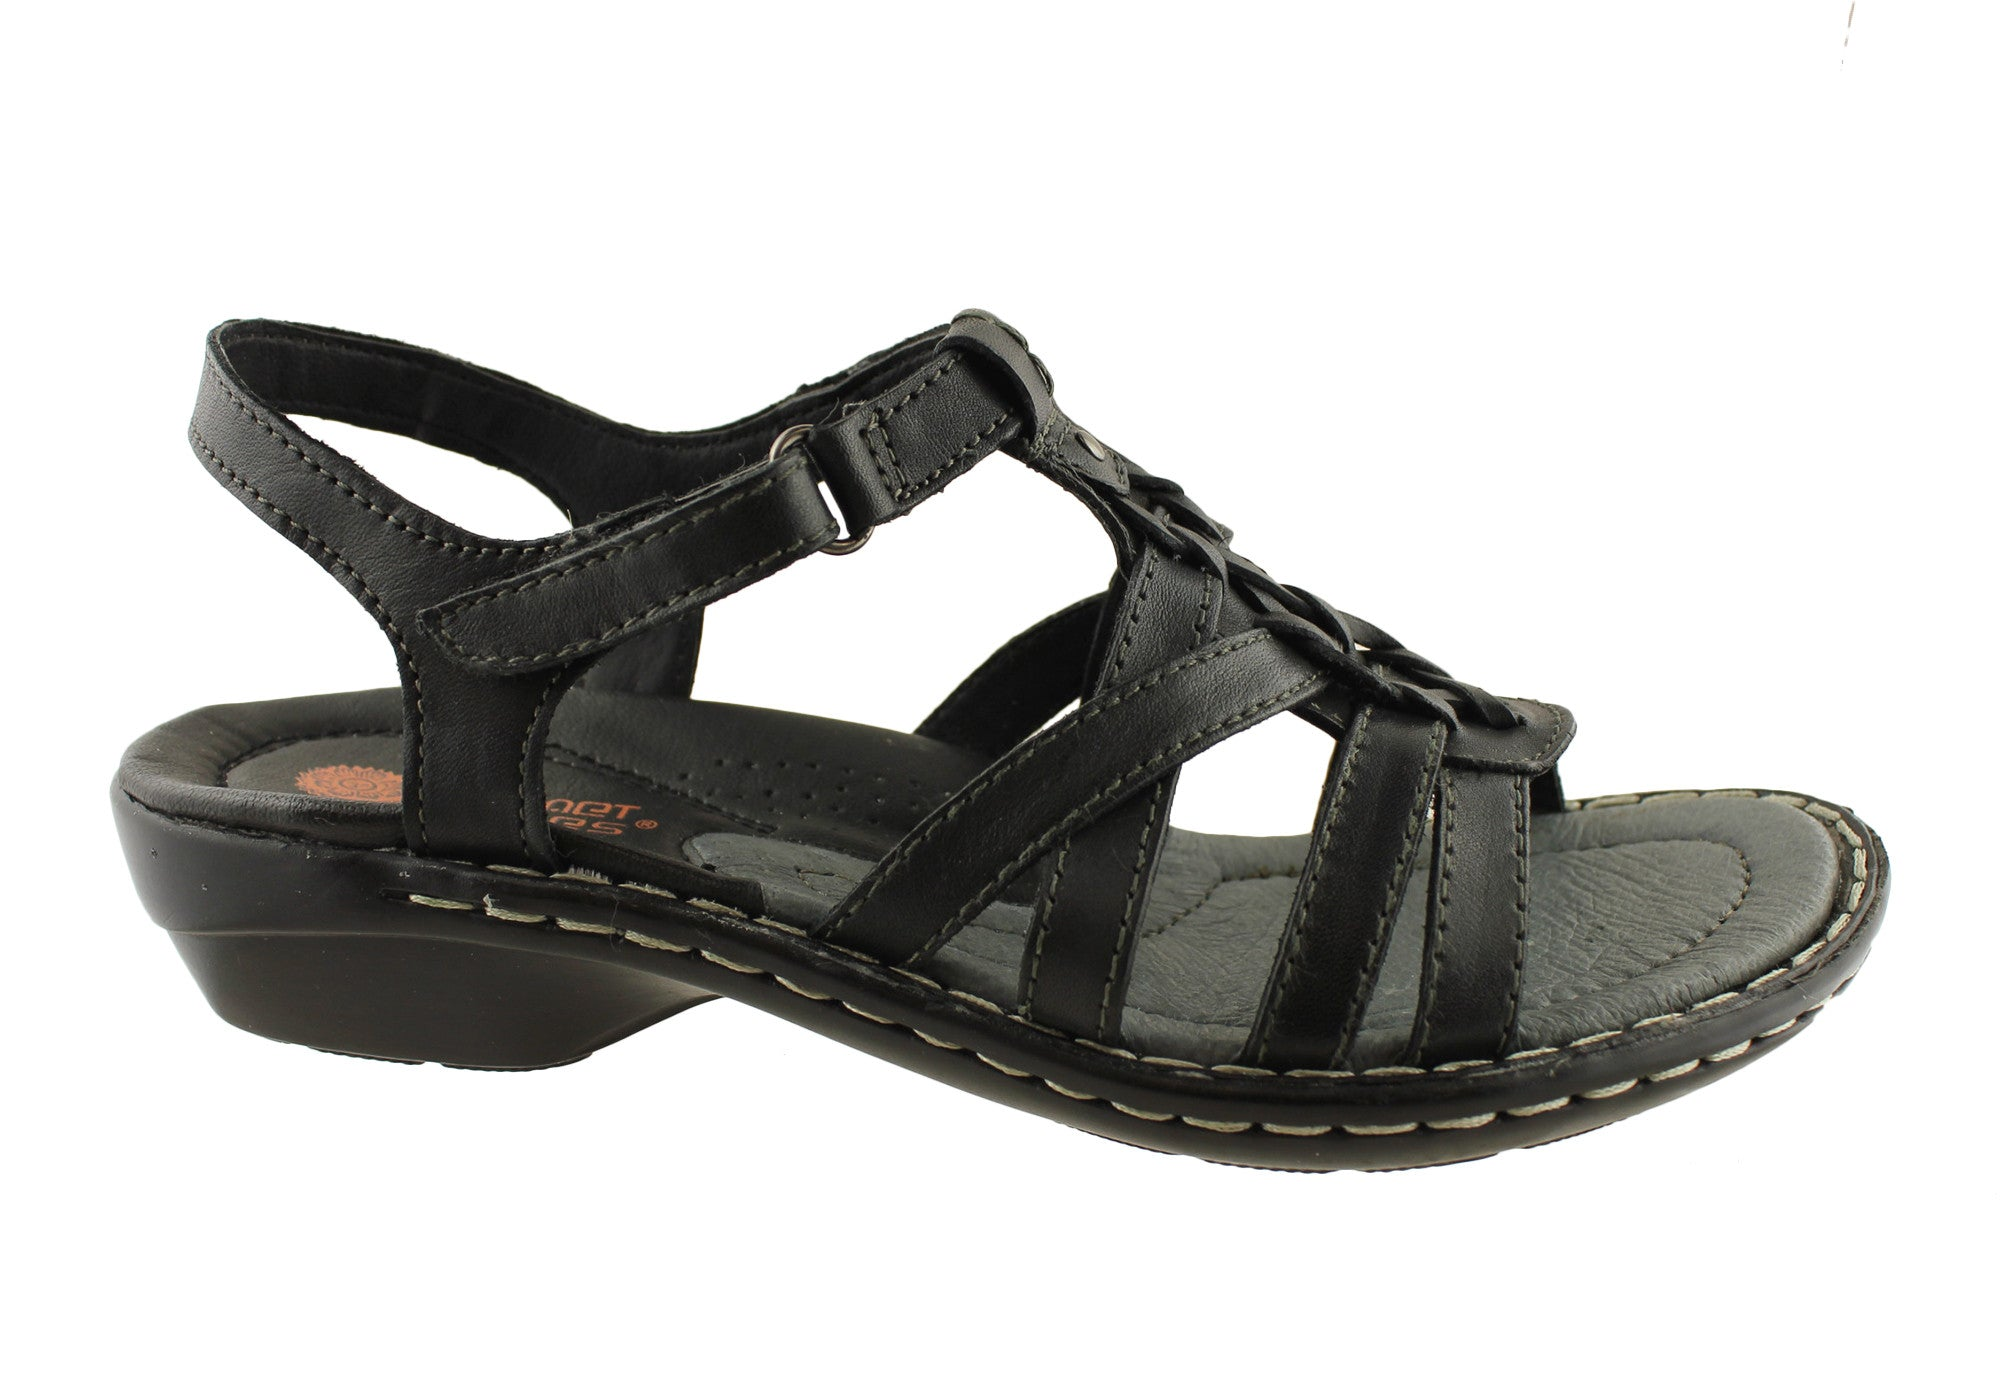 Planet Shoes Ancor Womens Leather Comfort Sandals Cushioned With Arch Support | eBay